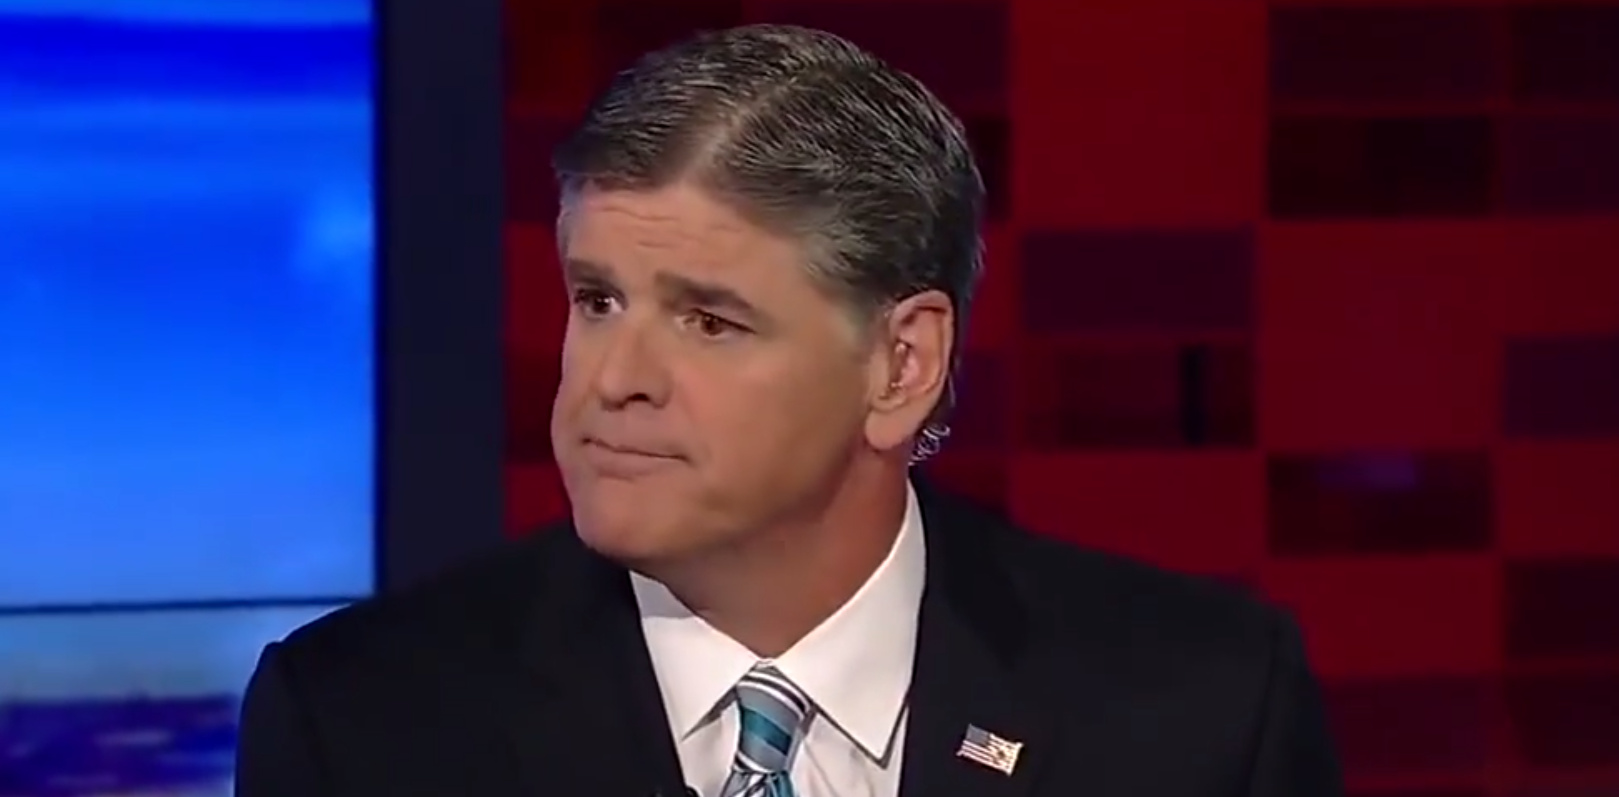 Hannity Exposes Assassination Threat Against Trump